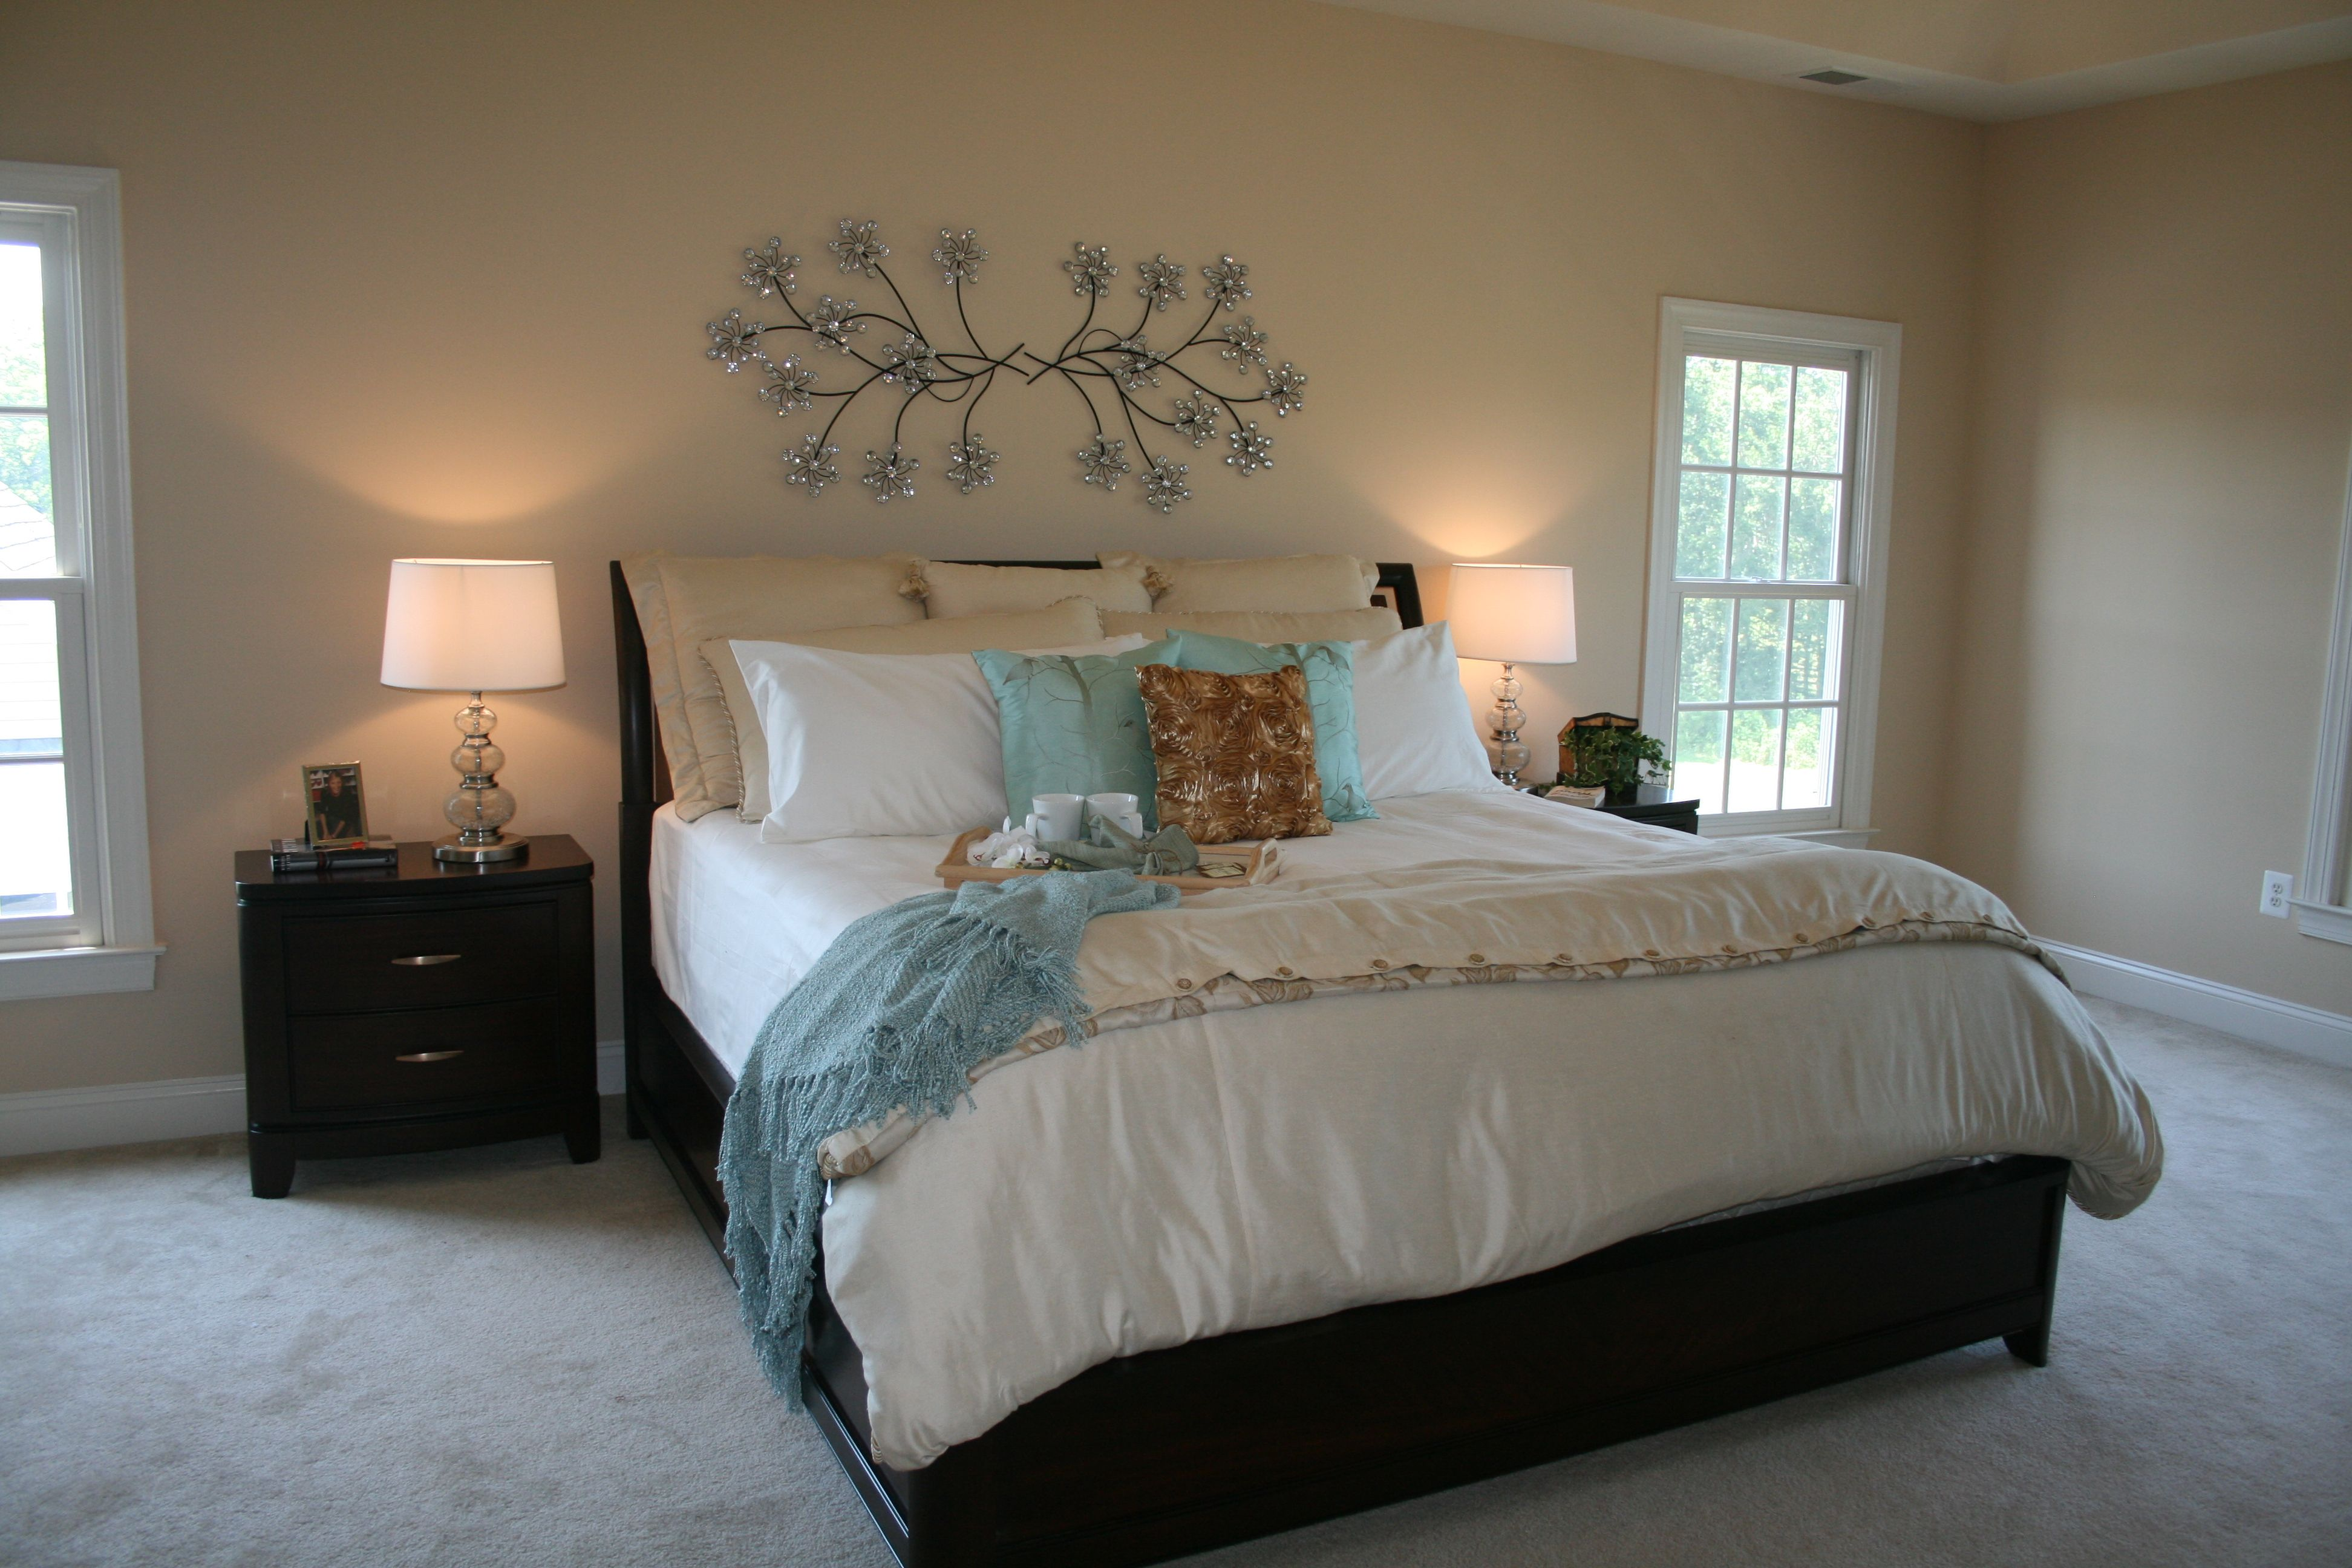 Bedroom Staging staging+bedrooms | vacant-home-staging-master-bedroom | home